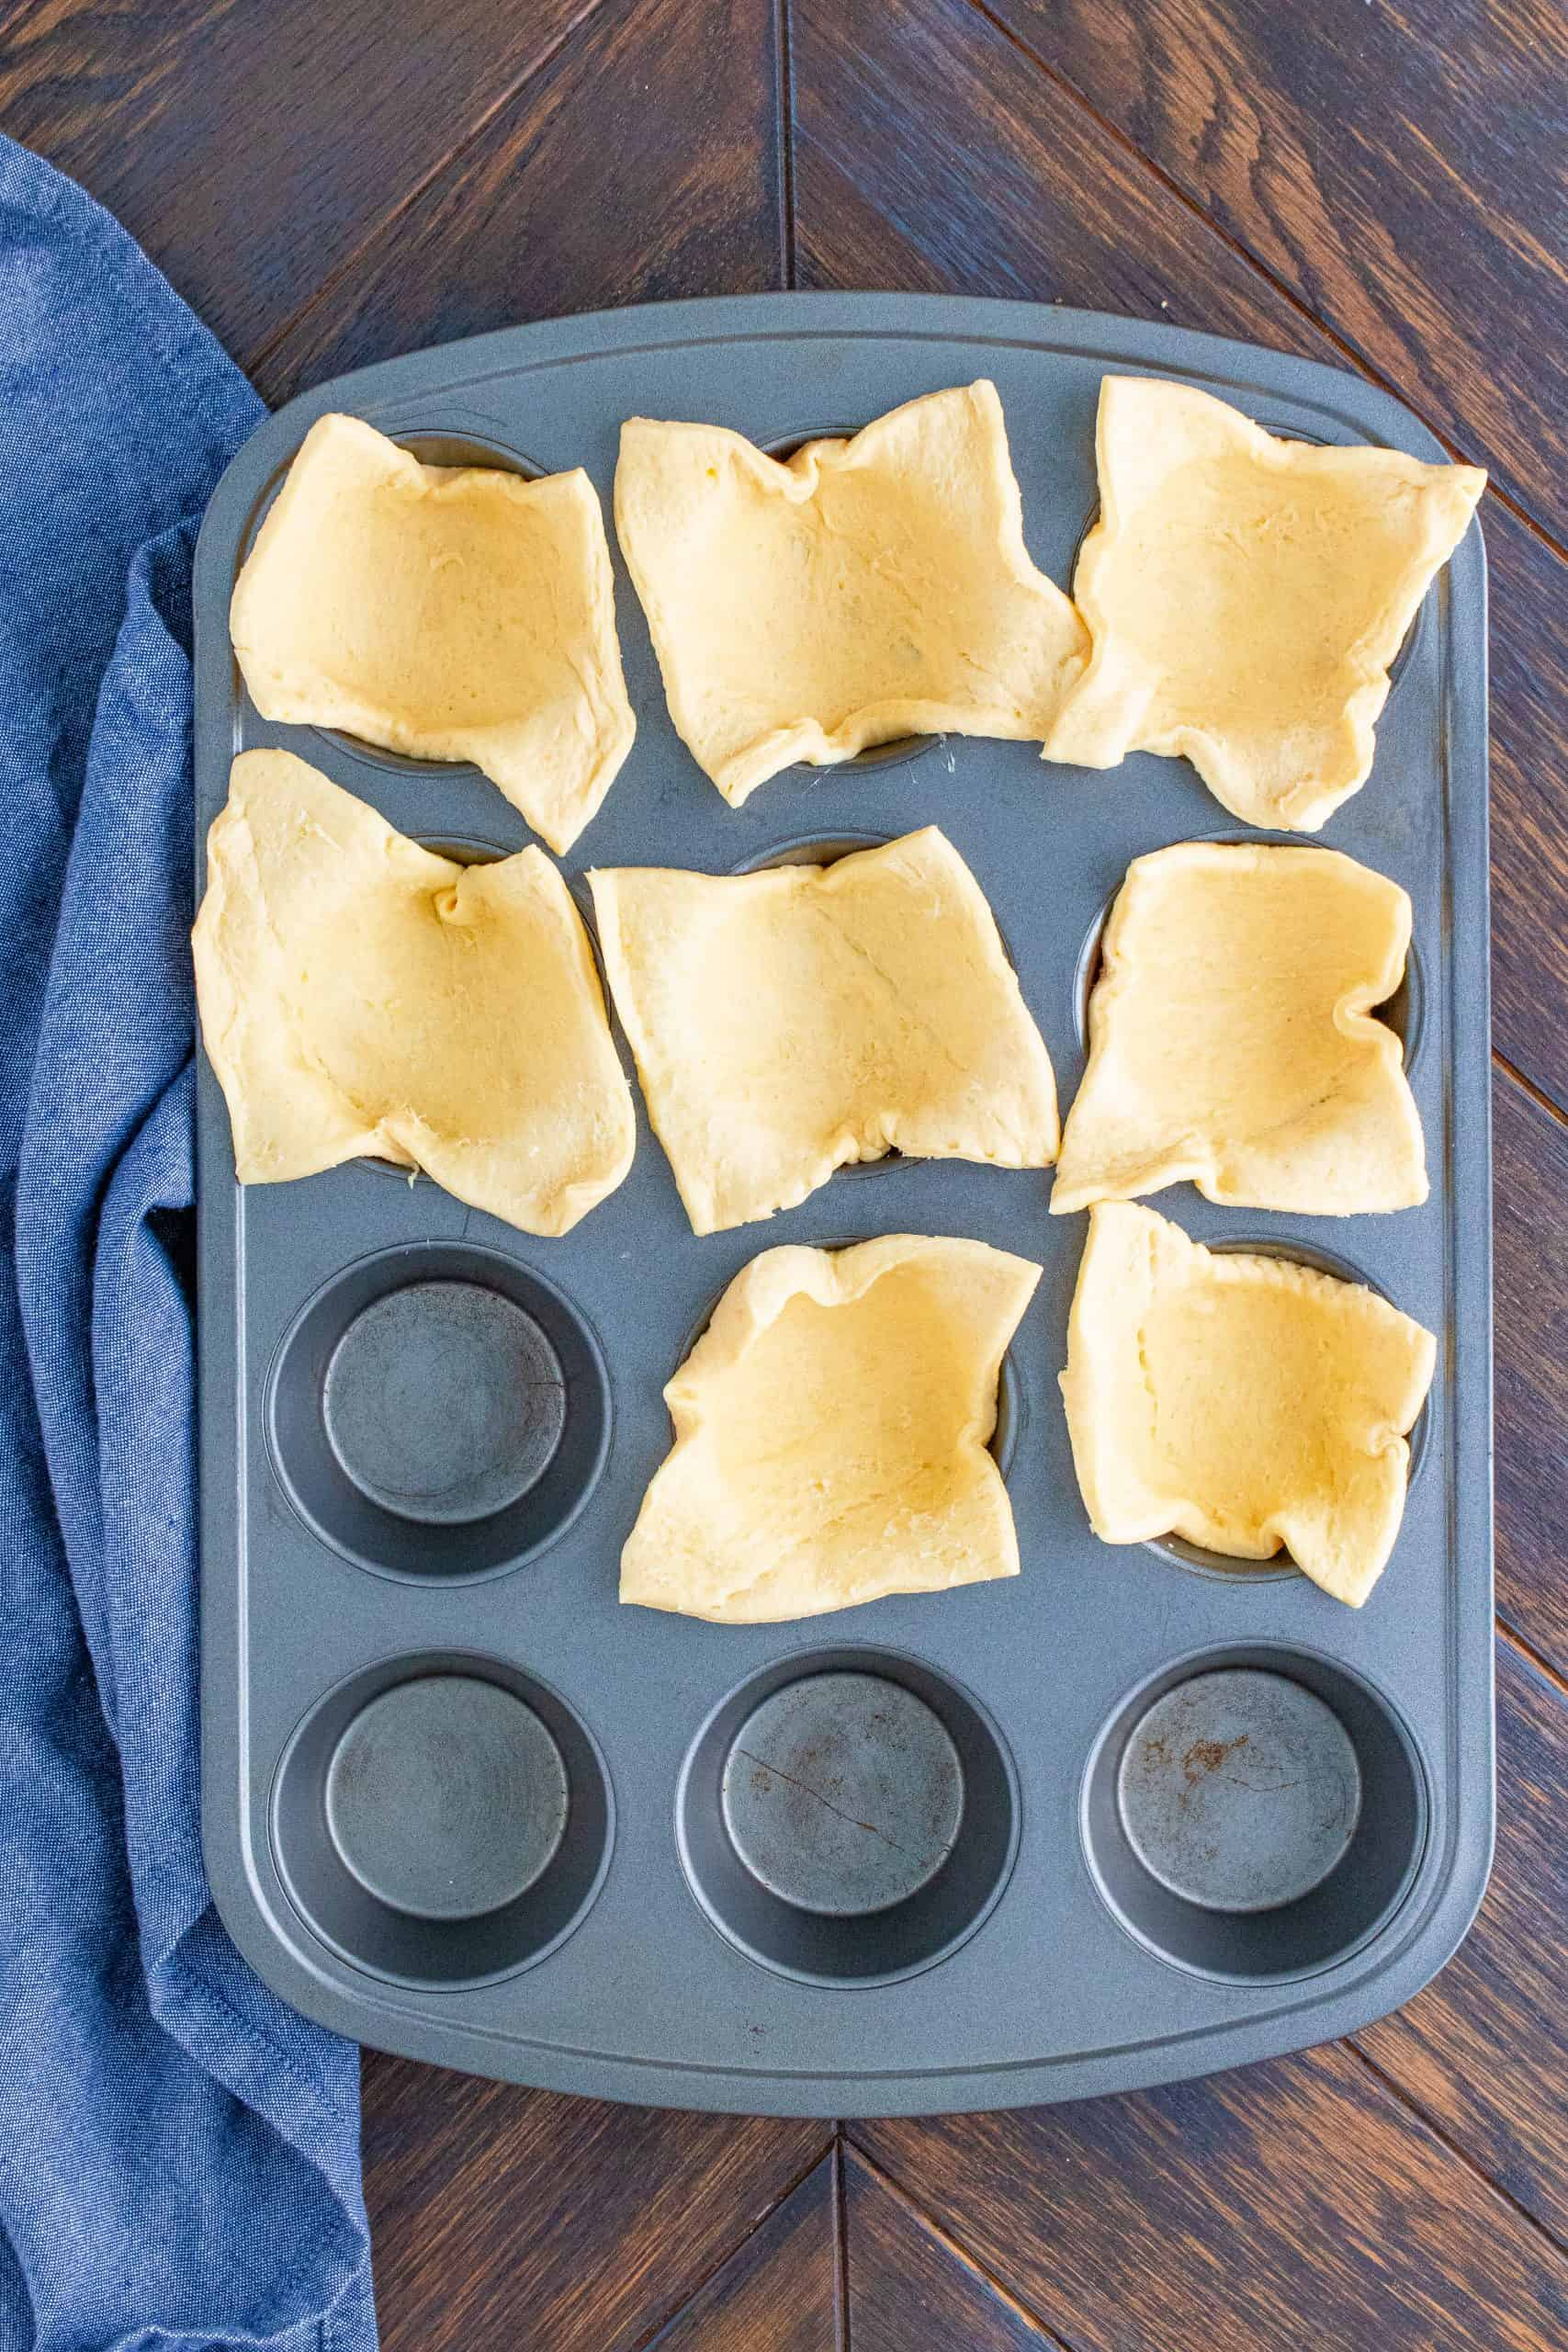 Cut Crescent dough placed into wells of a muffin tin.